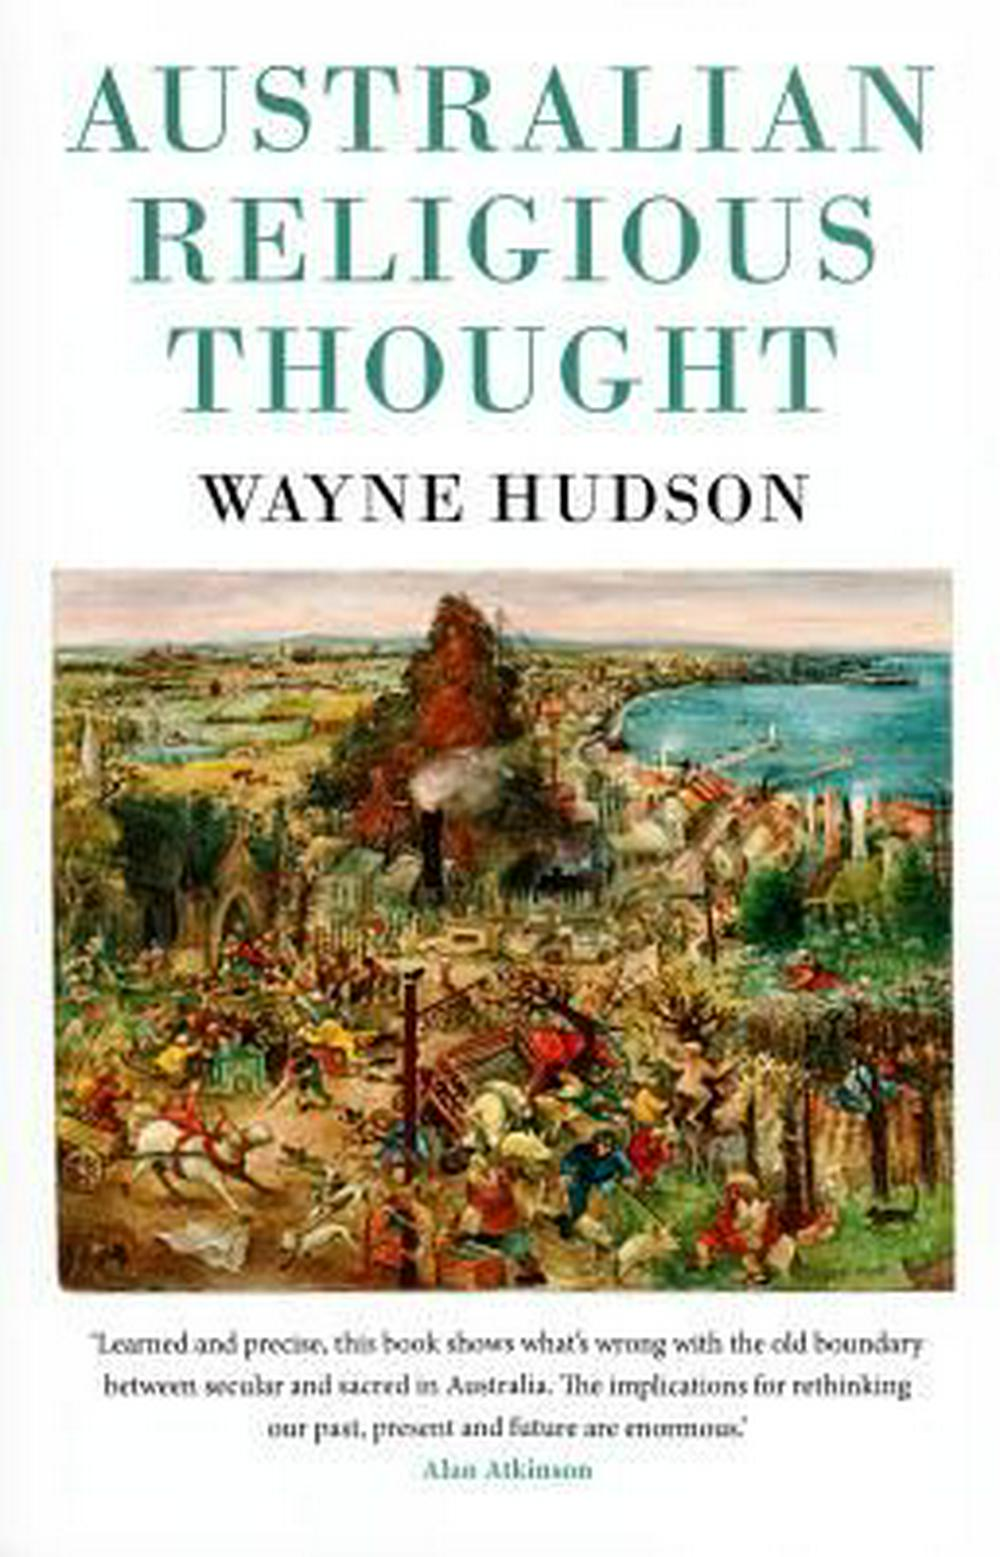 Australian Religious Thought: Six Explorations (Monash Studies in Australian Society) by Wayne Hudson, ISBN: 9781922235763